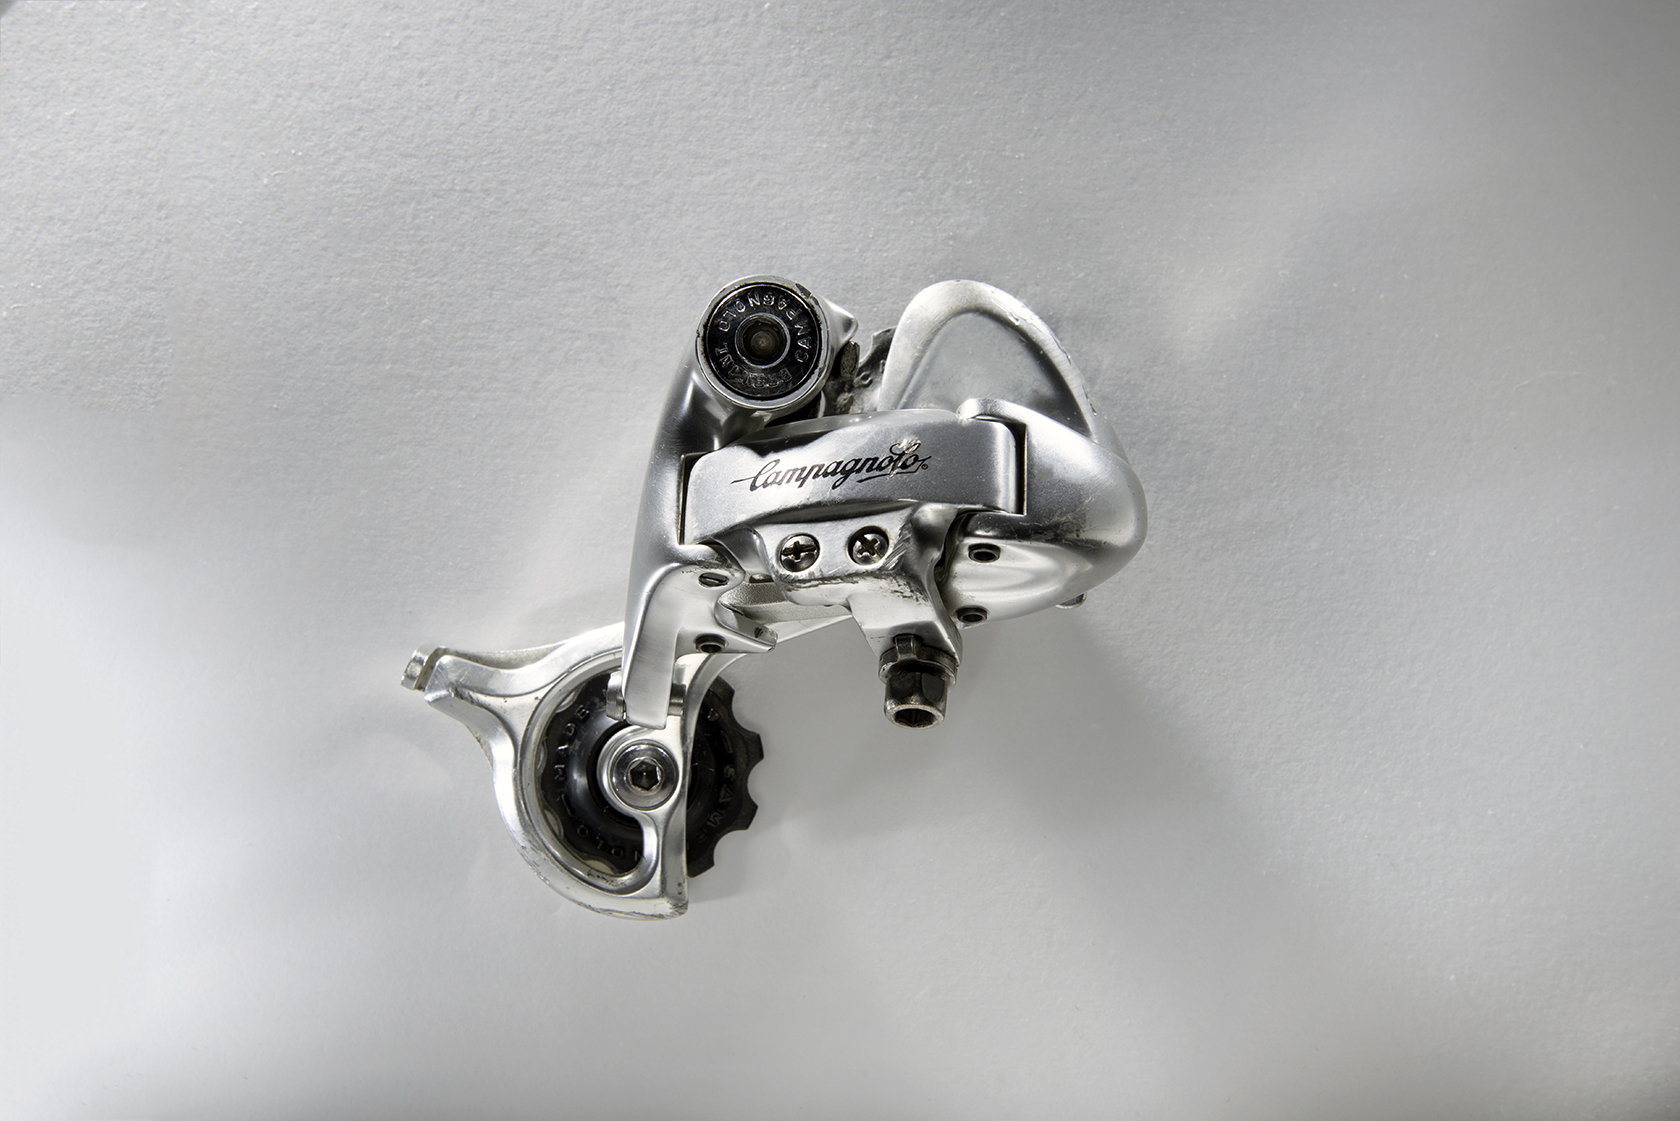 Campagnolo Record OR  It was introduced in 1992 and was Campy's high-end MTB grouppo at the time.